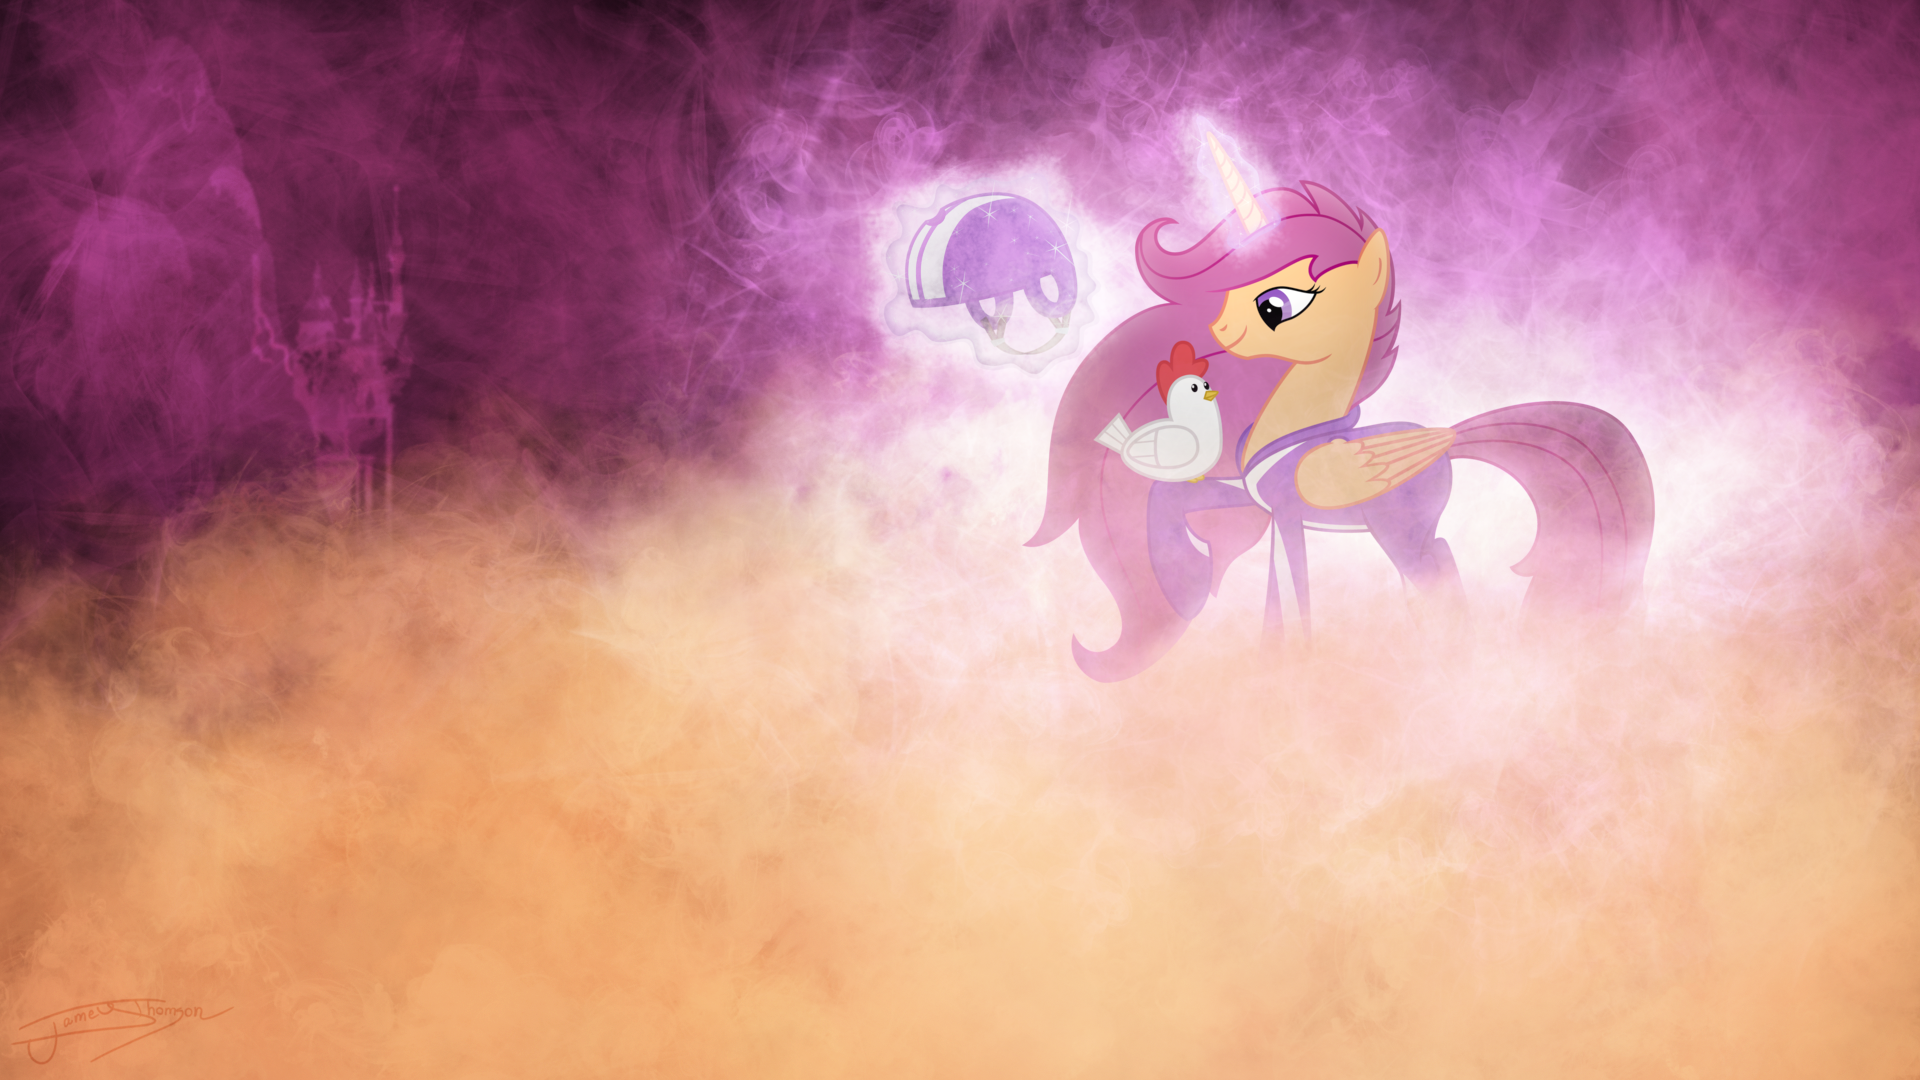 Princess Scootaloo Goddess Of Equestria My Little Pony Friendship Is Magic Know Your Meme It turned out pretty good so im sharing it with you. little pony friendship is magic